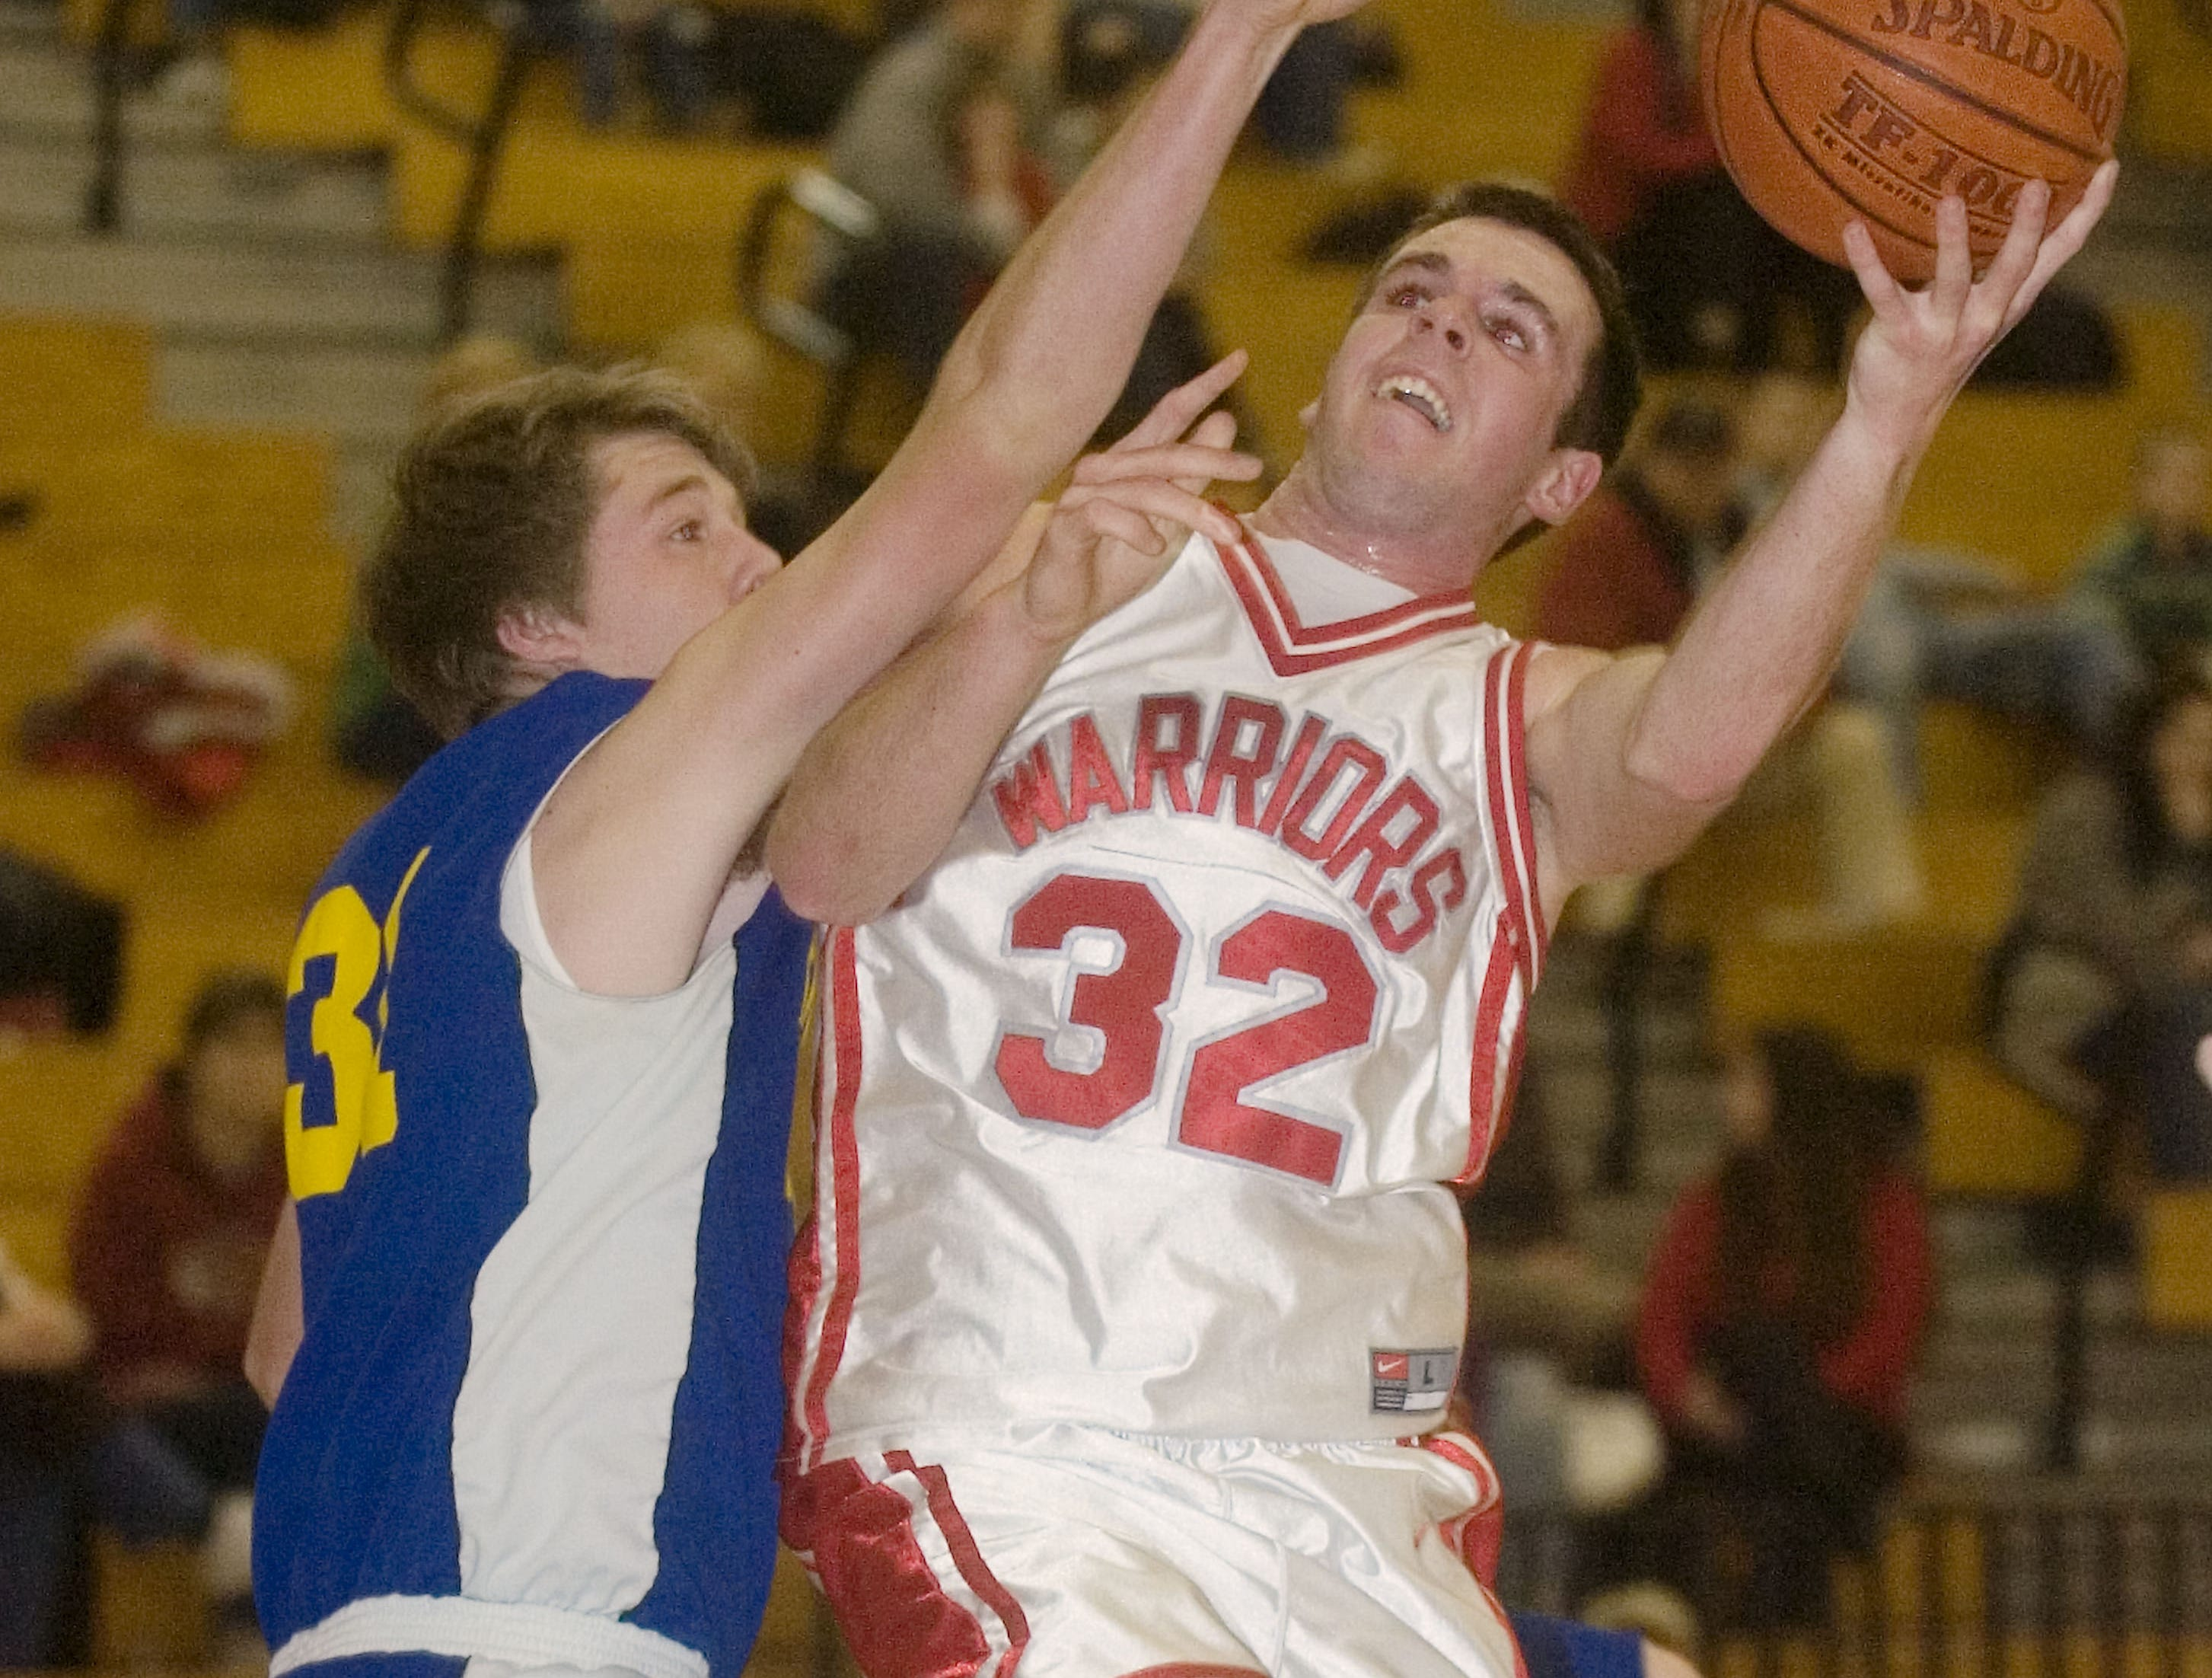 2009: Oneonta's Jacob VanDusen, left, defends Chenango Valley's Tom Hull in the second quarter of Tuesday's game at CV.